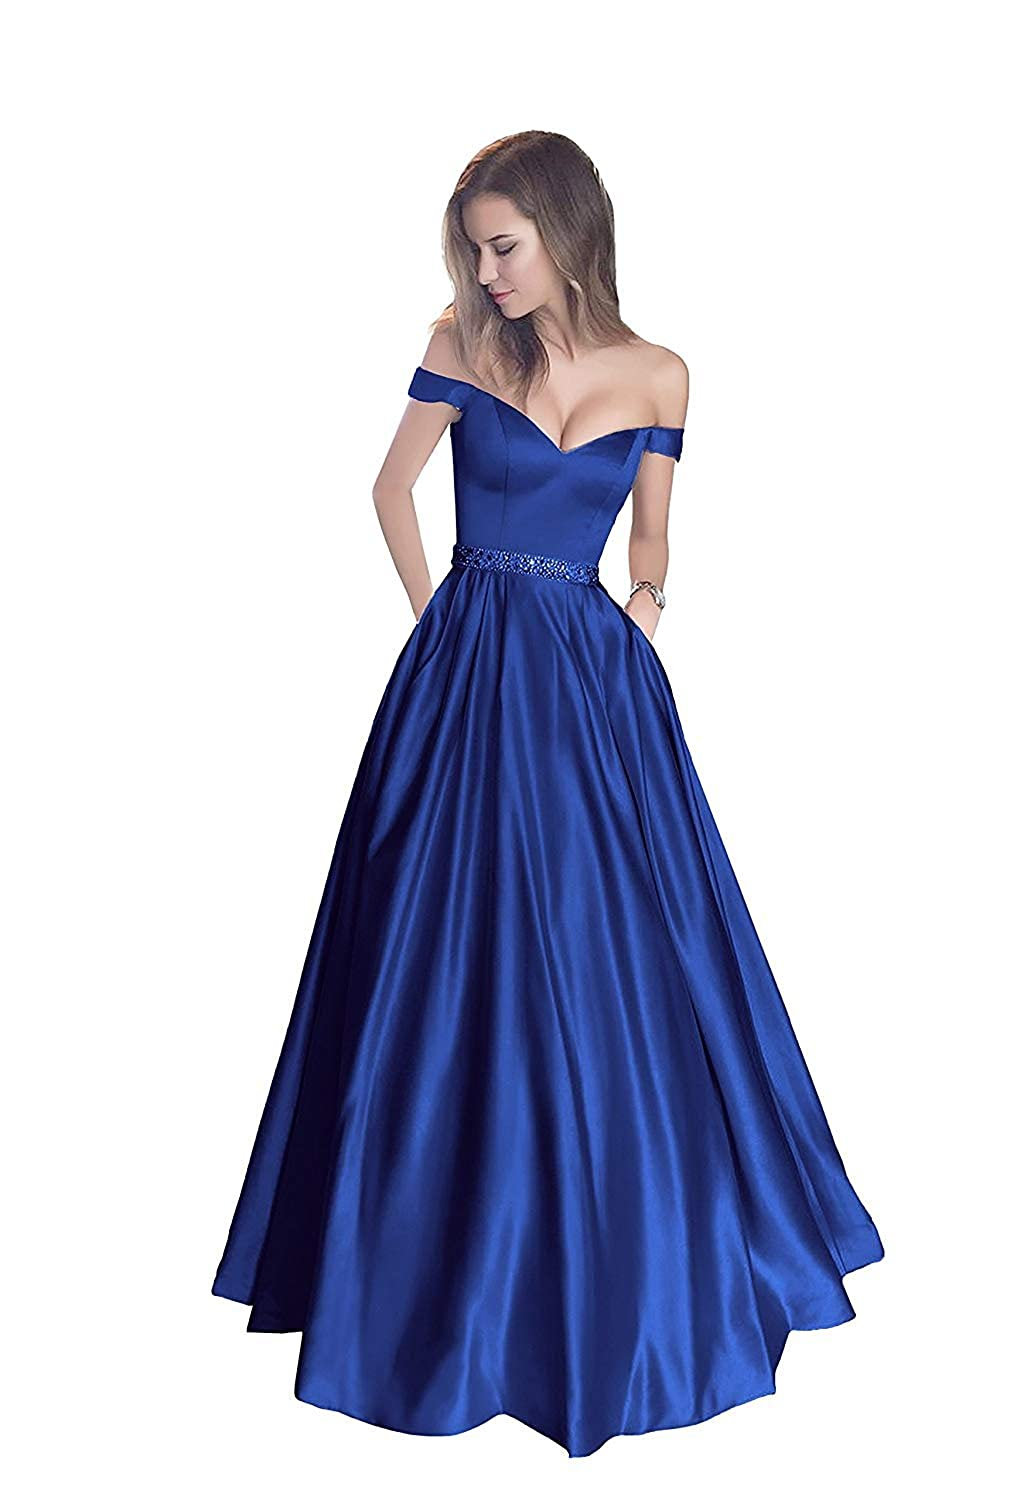 Royal bluee FJMM Womens Off The Shoulder Beaded ALine Prom Dress for Party